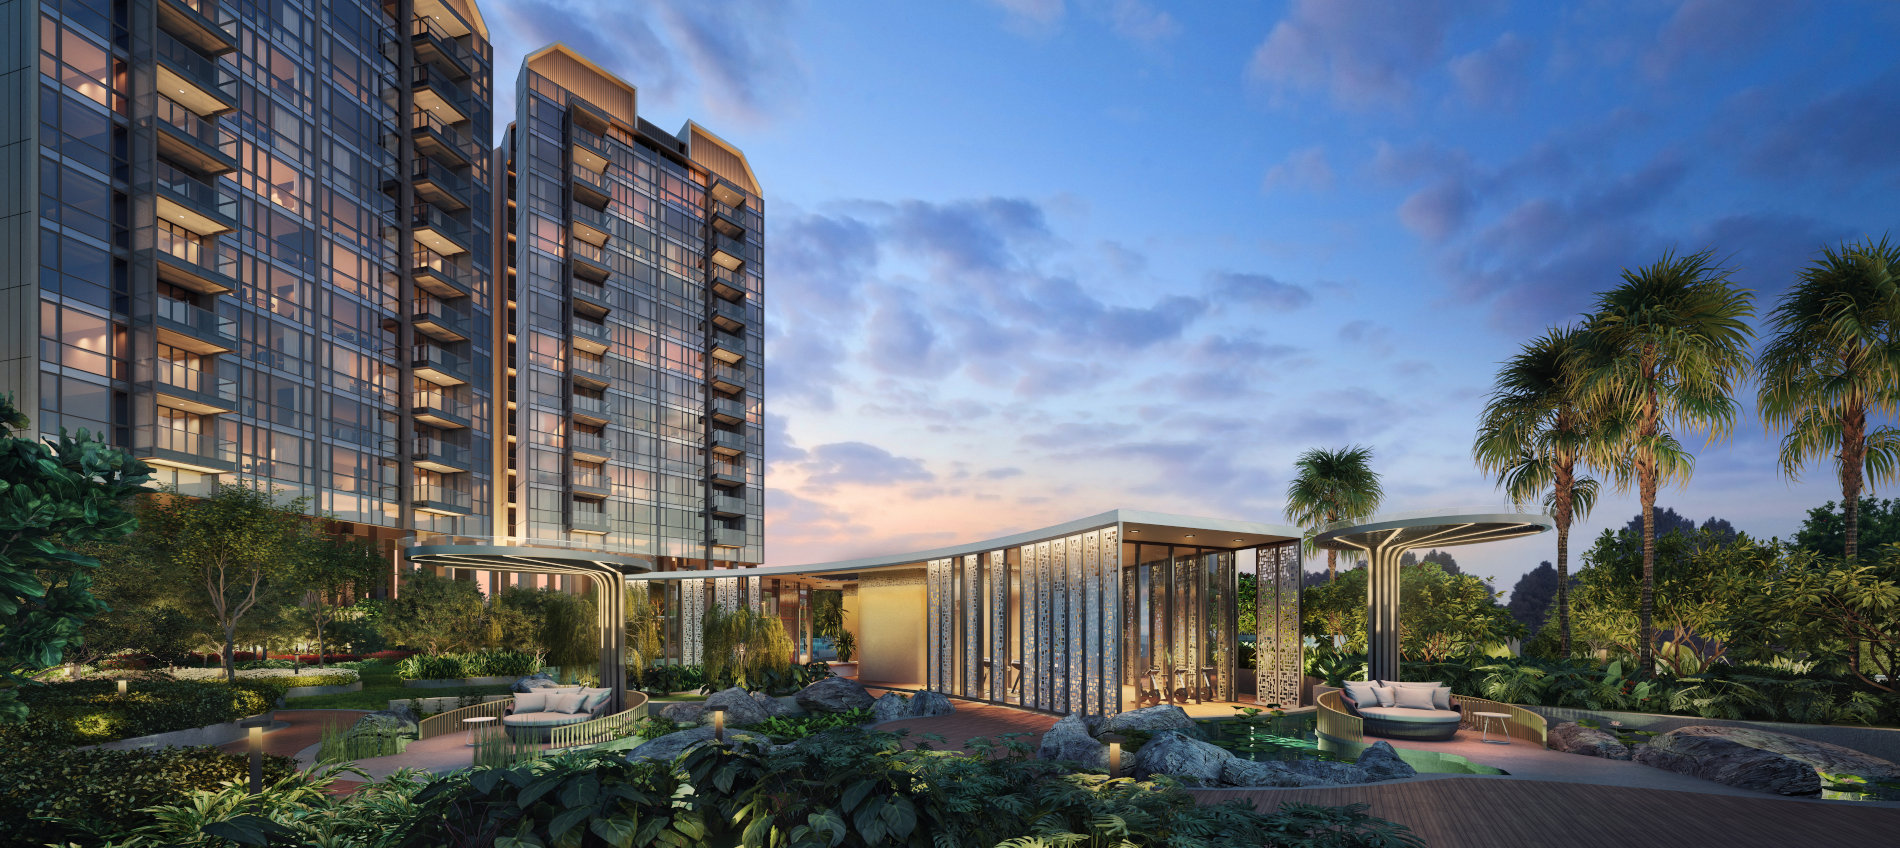 Hyll on Holland Condo Clubhouse & Facilities